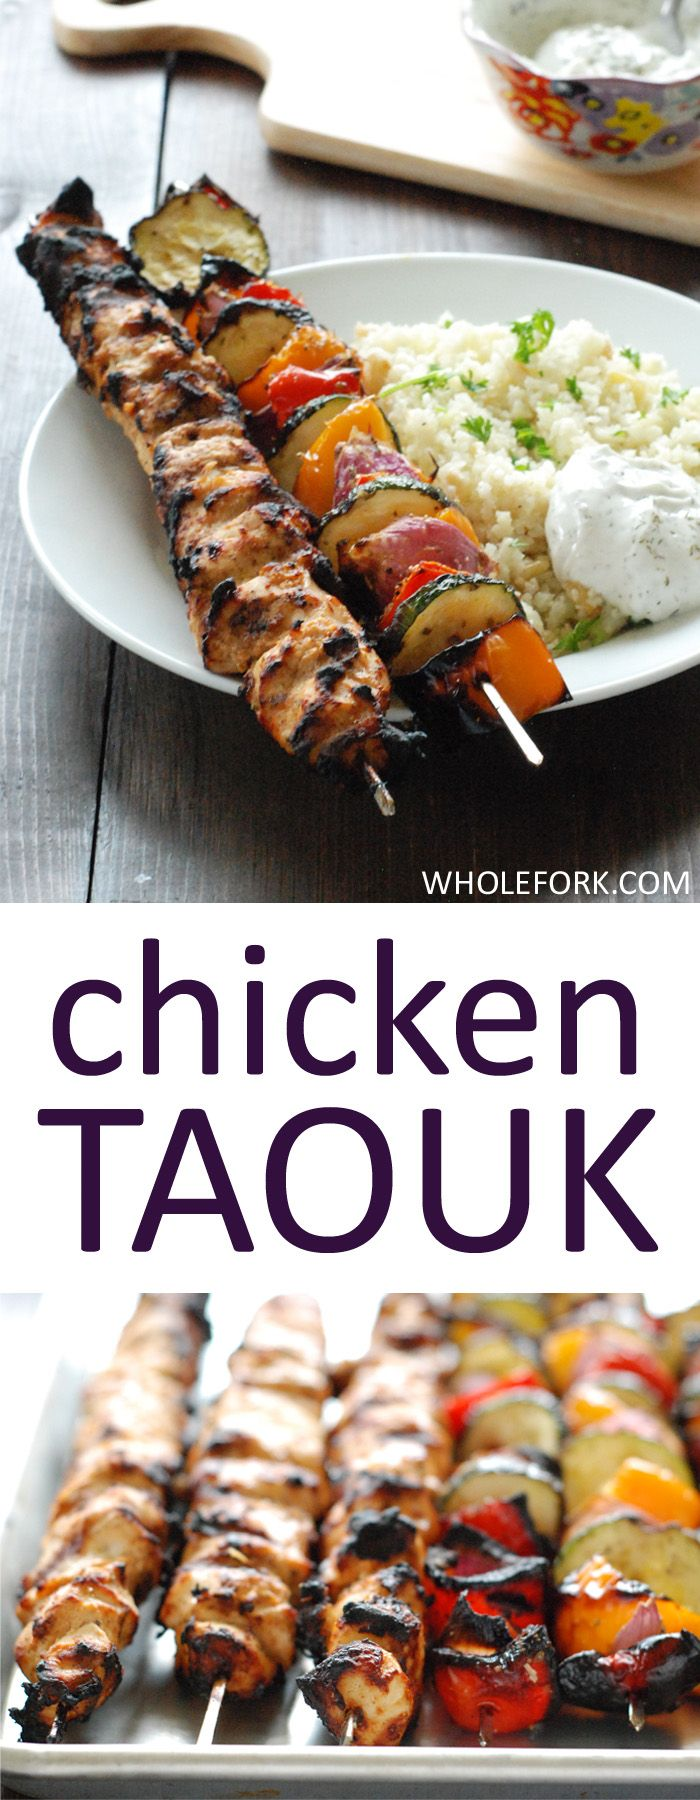 Turkish Chicken Taouk